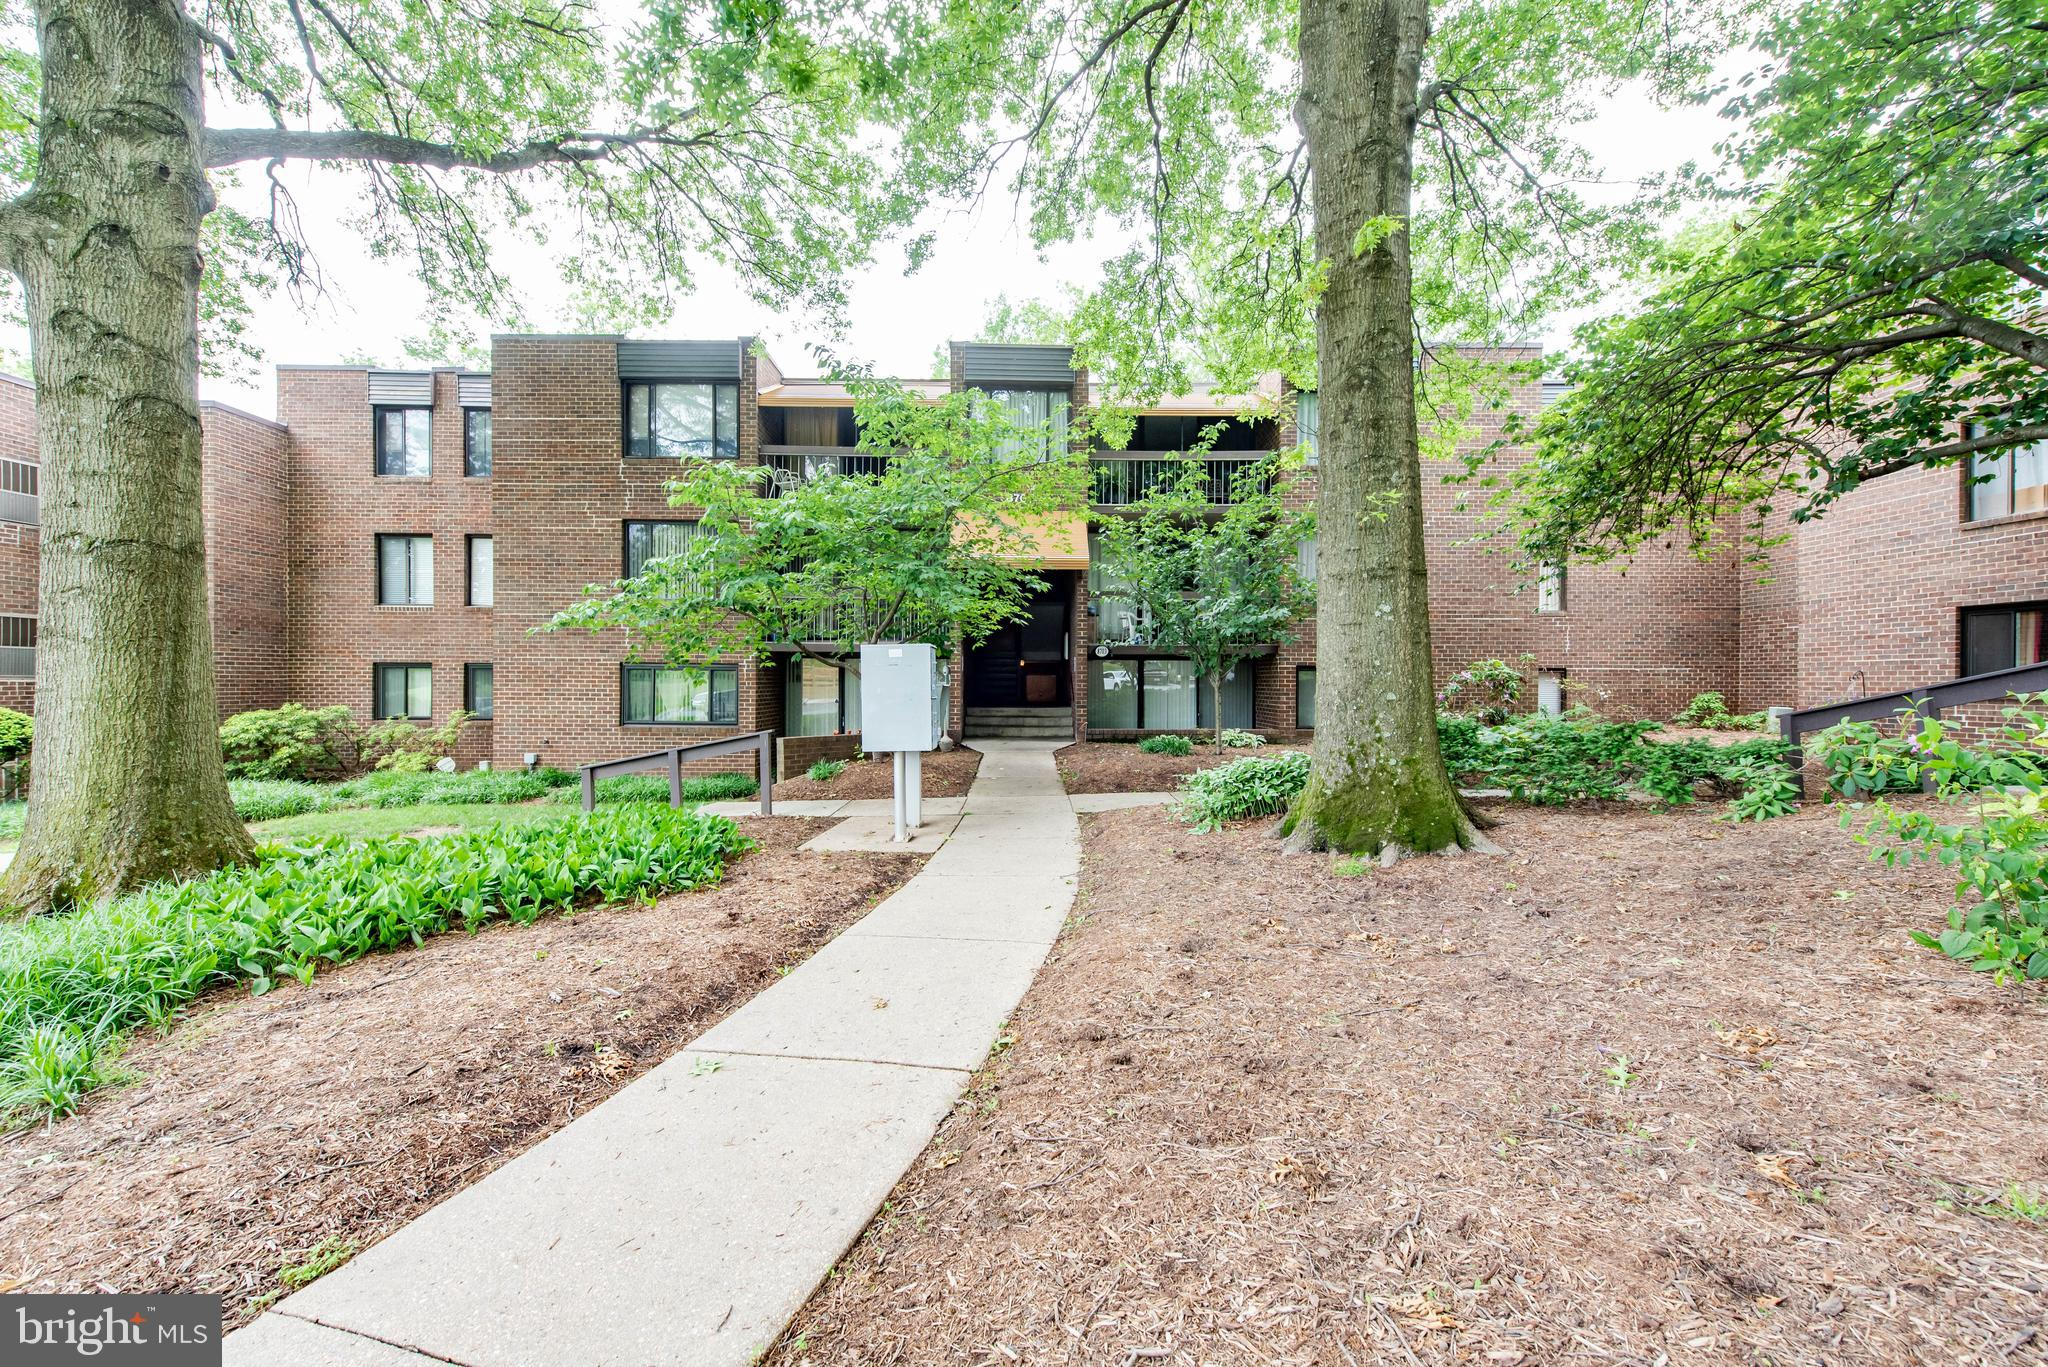 Beautiful modern appointed 3 bedroom condo with remodeled eat-in kitchen with shaker cabinets, deep